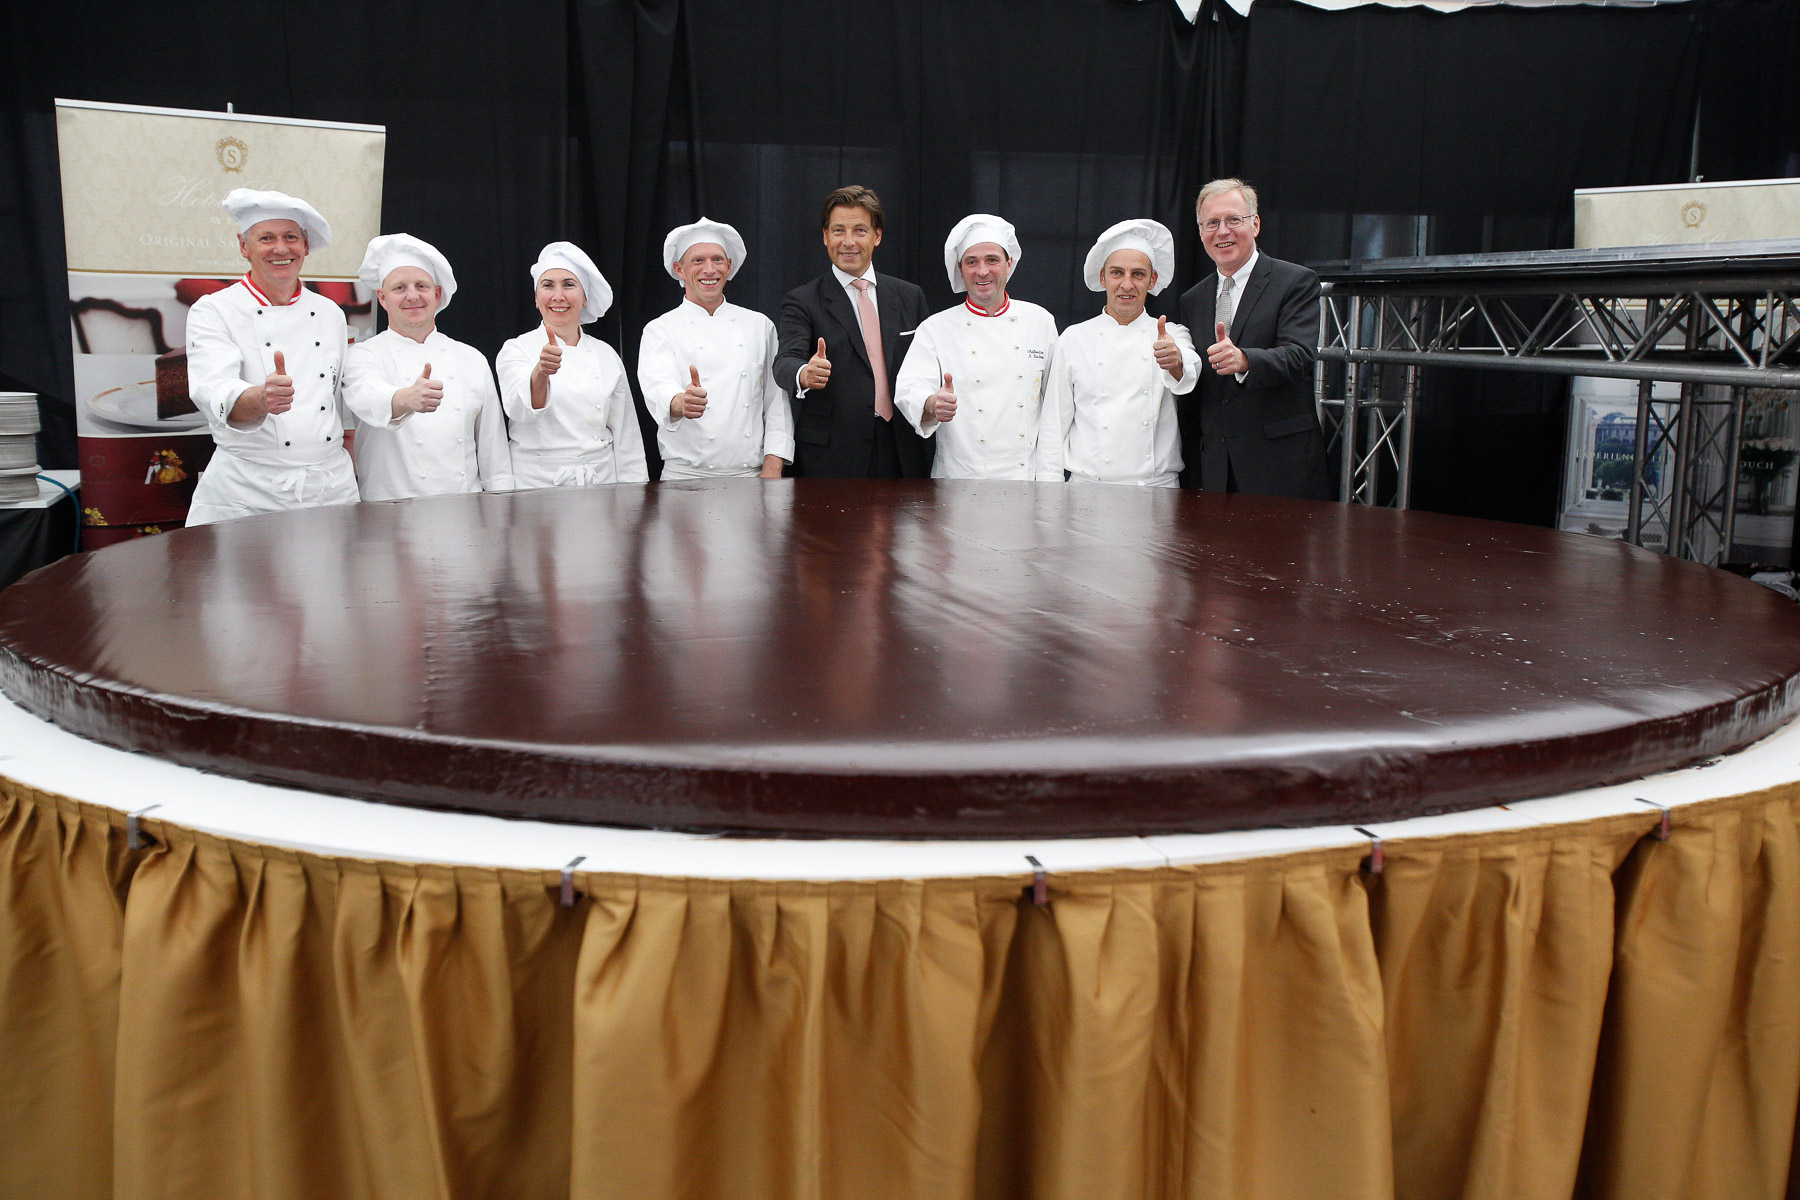 Confectioners, Sacher family member Matthias Winkler and managing director of Sacher Hotel Vienna Reiner Heilmann (far right) pose the world's largest original Sacher-torte in Ljubljana, Slovenia, Sept. 21, 2016. The largest original Sacher-cake was made to mark the ending of the Vienna Days in Ljubljana.